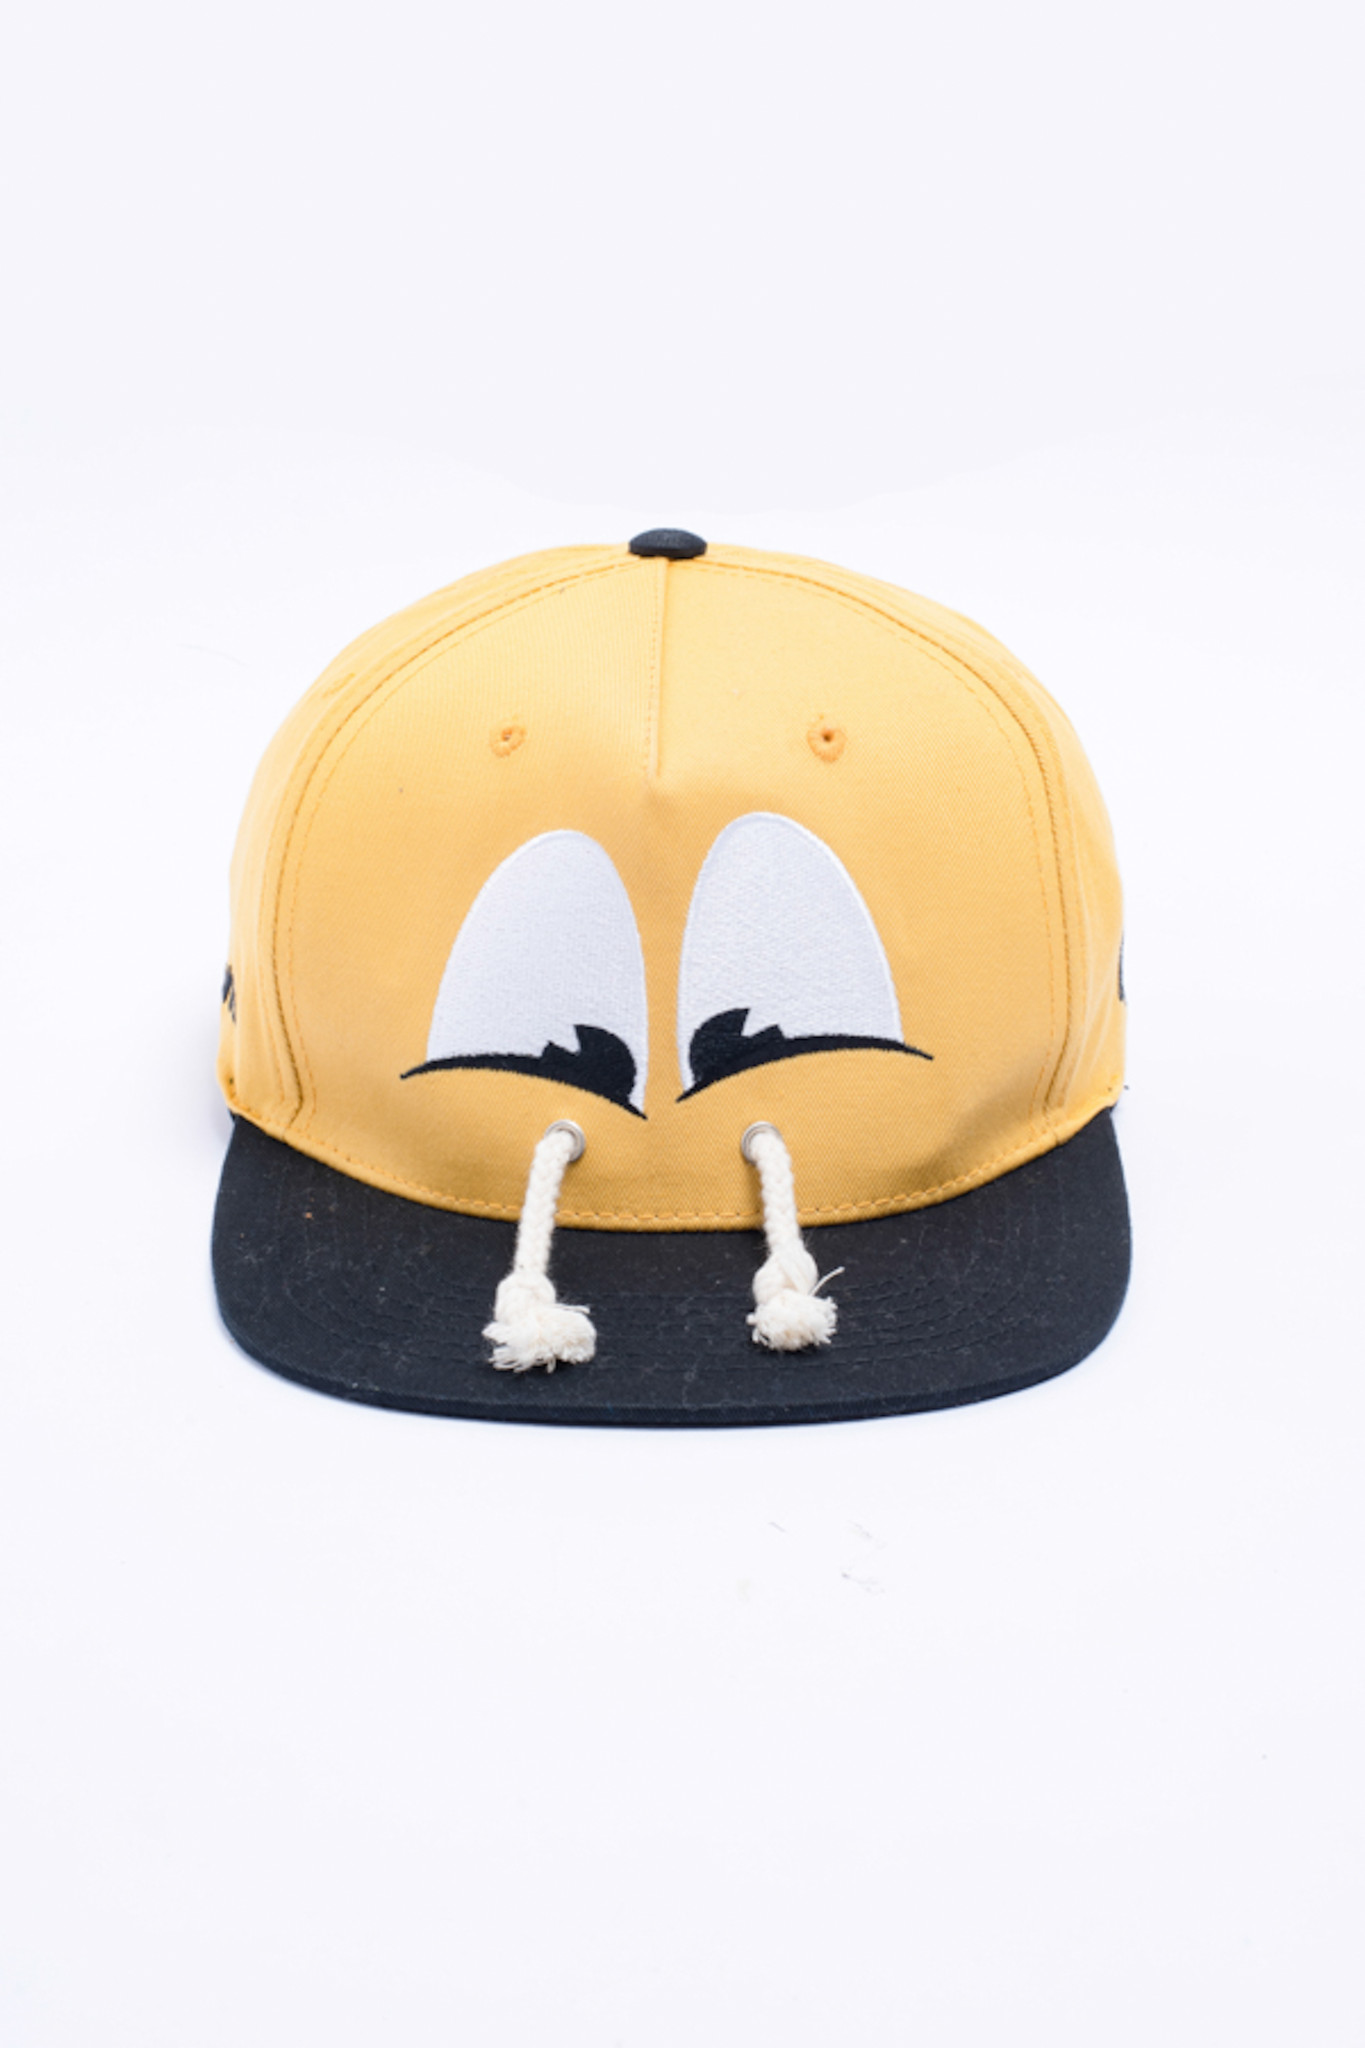 MŨ SNAPBACK THÊU PATCH GRAPHIC YELLOW. LARVA. GRAPHIC